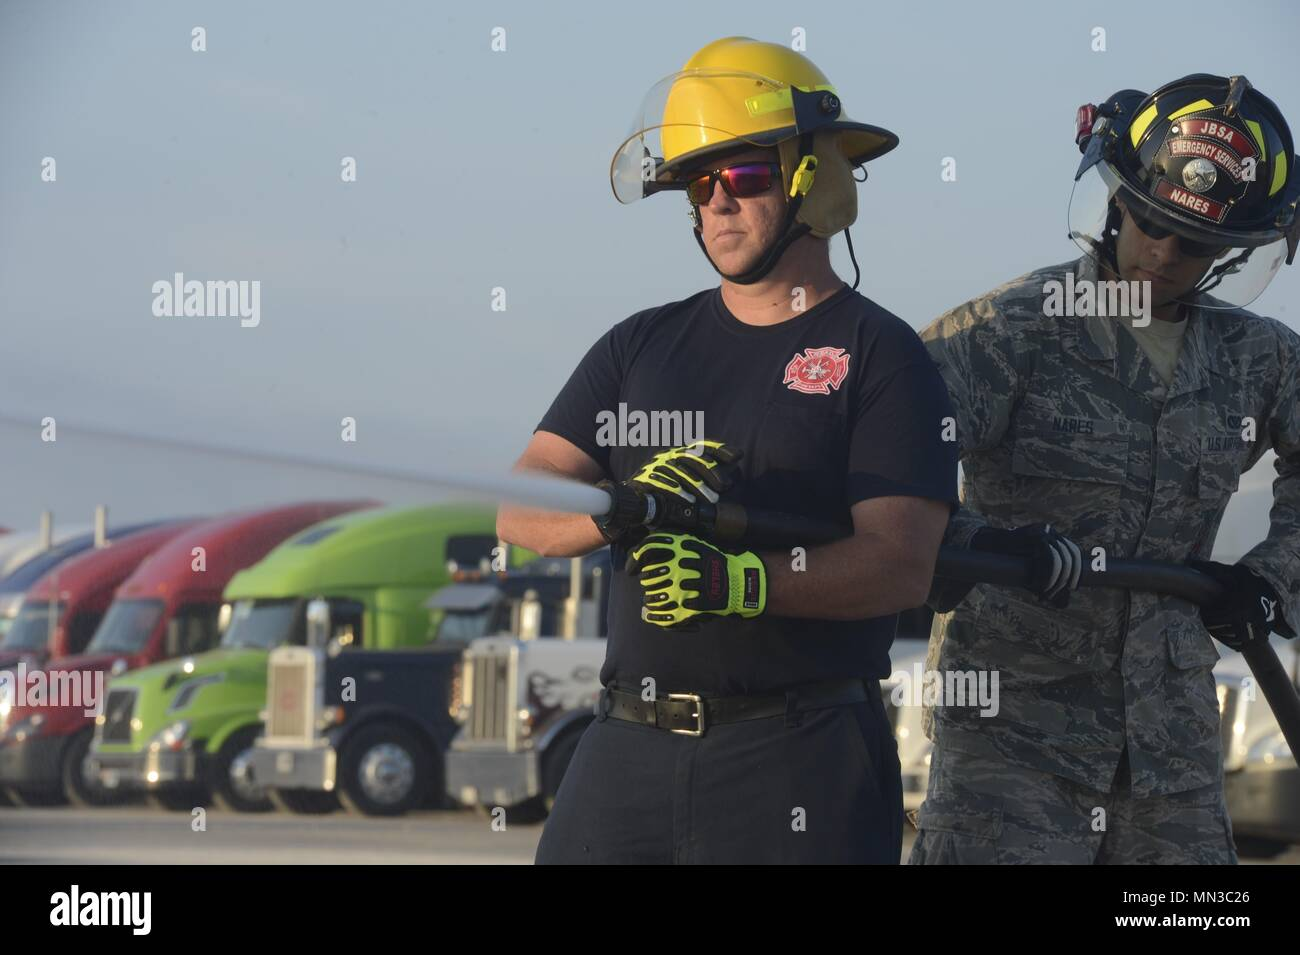 Jeff Duncan, Red River Army Depot firefighter/EMT, and Airman 1st Class Evan Nares, 502nd Civil Engineering Squadron head driver operator, conducts an operation check on an attack line for a state of readiness during the Hurricane Harvey relief efforts, at JBSA Randolph auxiliary airfield, Seguin, Texas, September 2, 2017. The category-4 hurricane, with wind speeds of 130 mph, made landfall August 25, 2017.  Days after the hurricane reached Texas, more than 50 inches of rain flooded the coastal region. (U.S. Air Force Photo by Tech. Sgt. Chad Chisholm/Released) Stock Photo